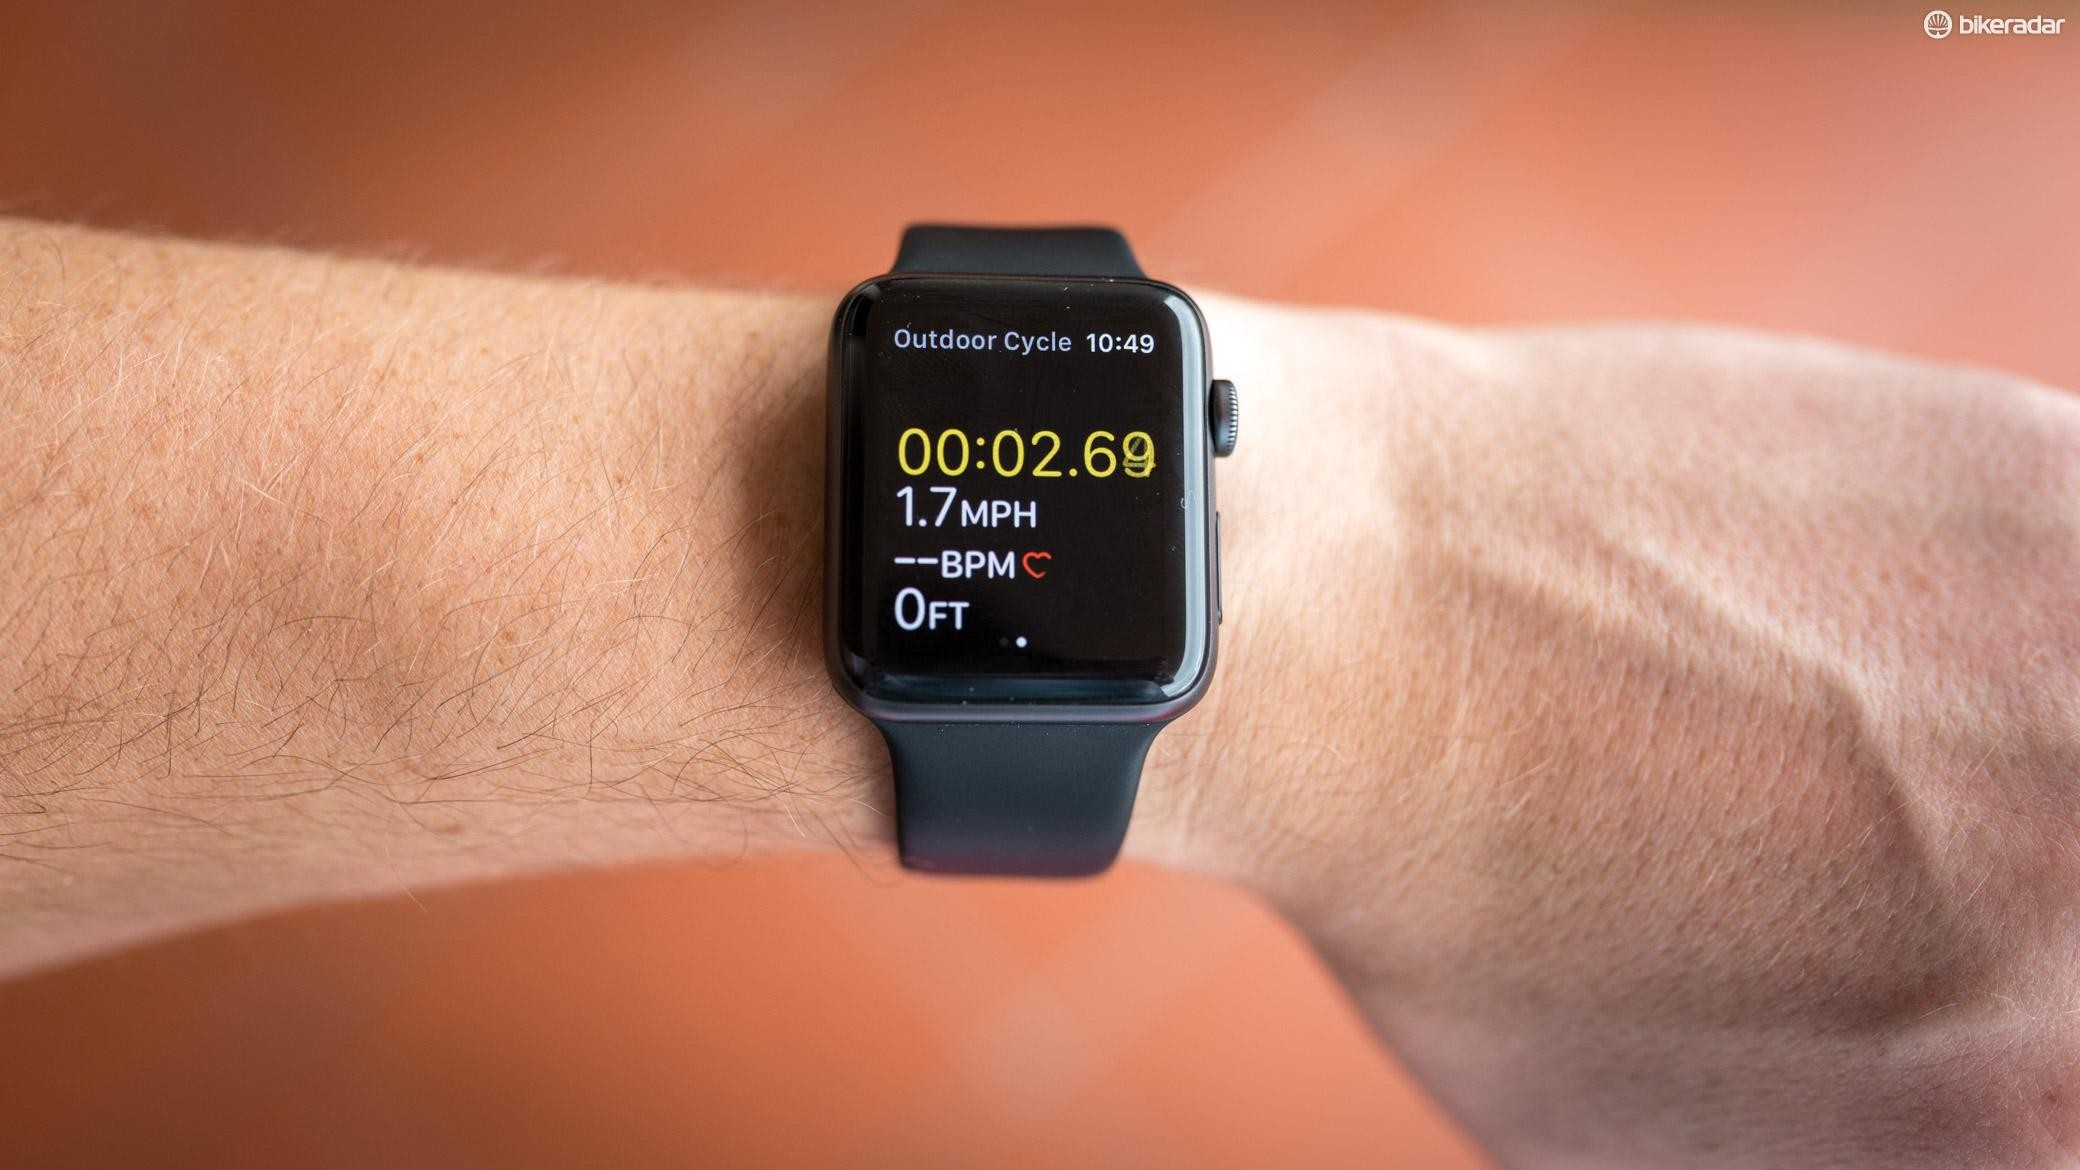 While many of the new features are not necessarily cycling specific at the moment, they seem to offer interesting options for developers and cycling tech brands